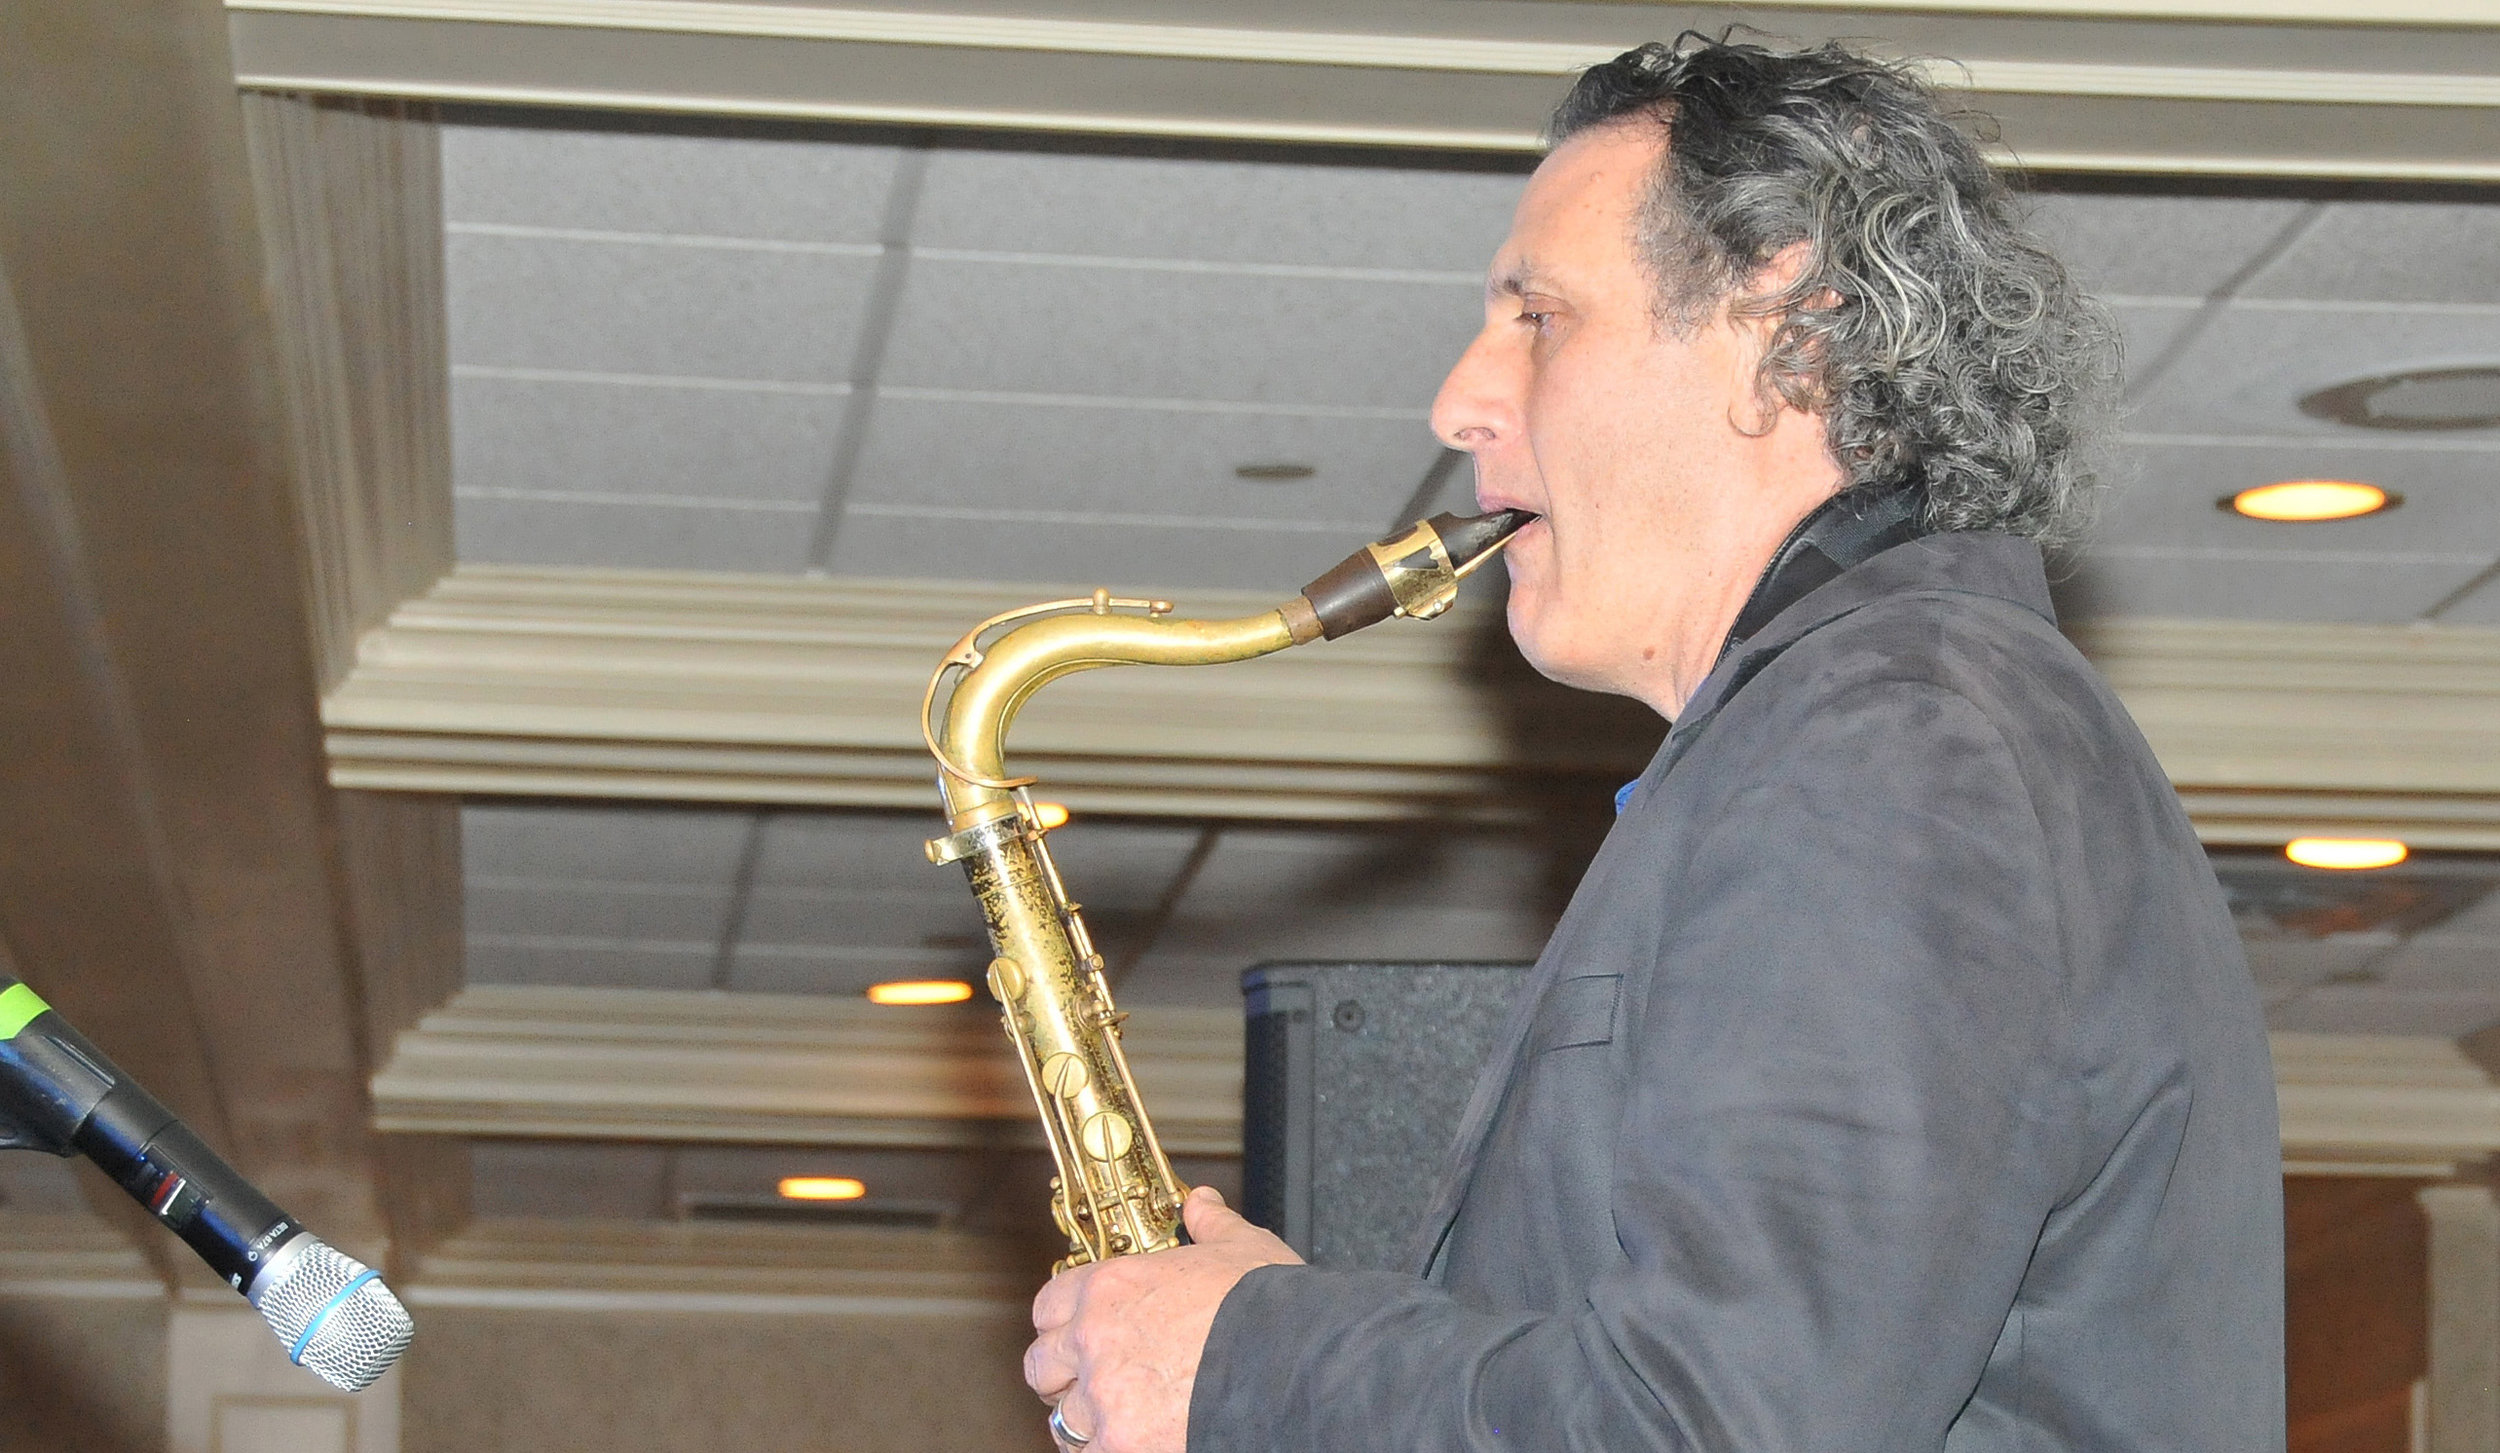 Sax player on stage w Ben Sampson n Girl in background.jpg